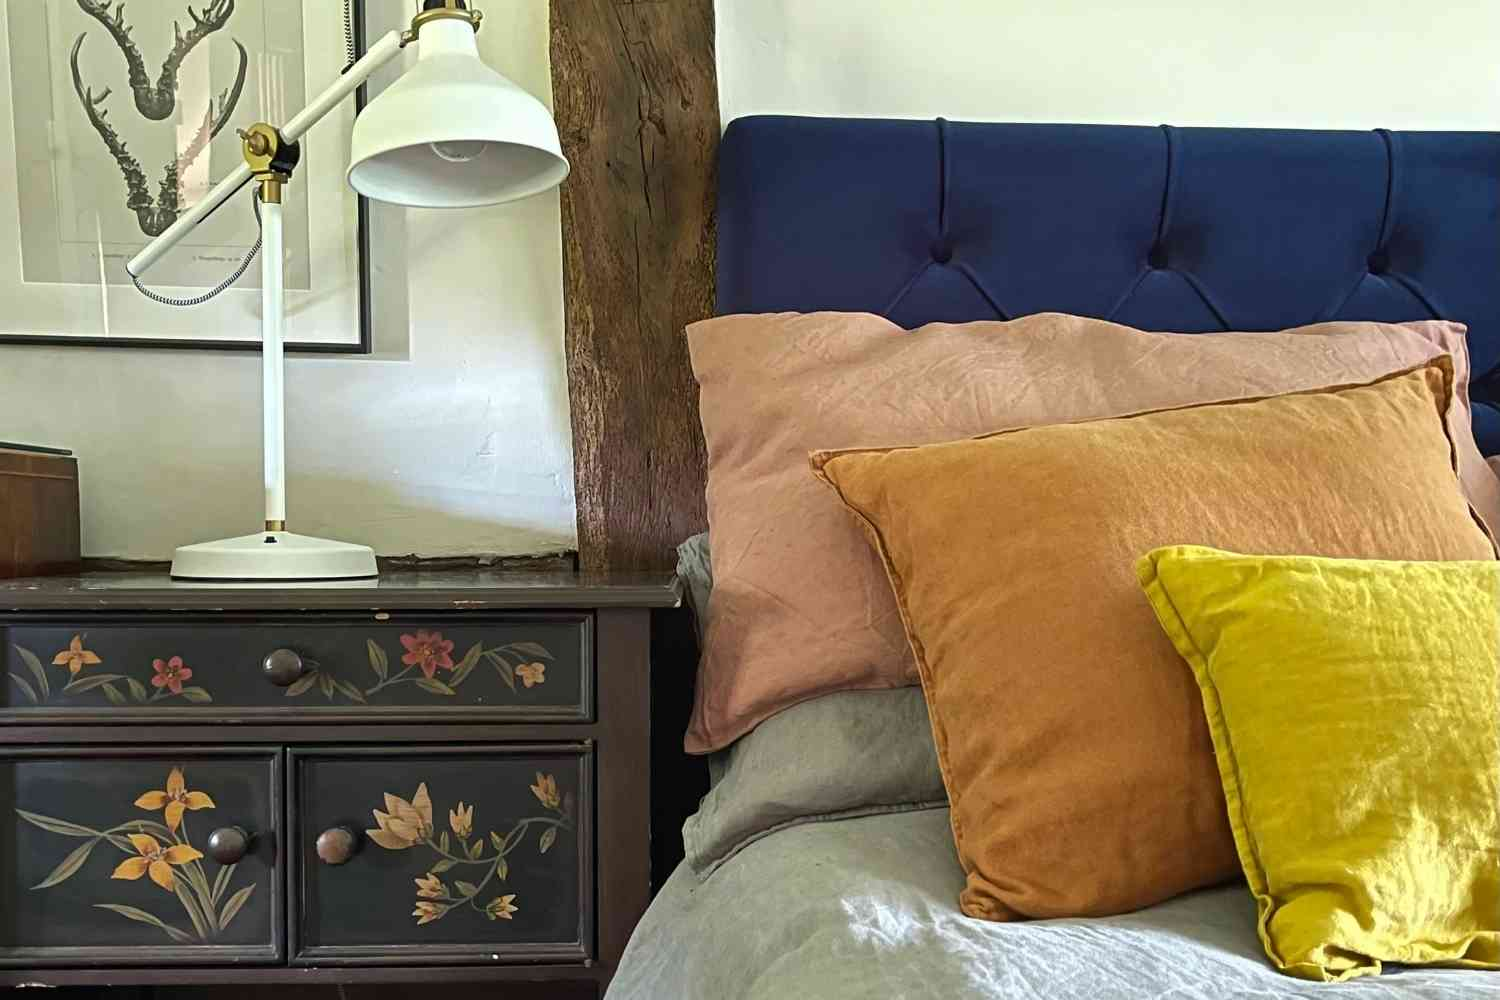 Reclaimed furniture and comfortable linens